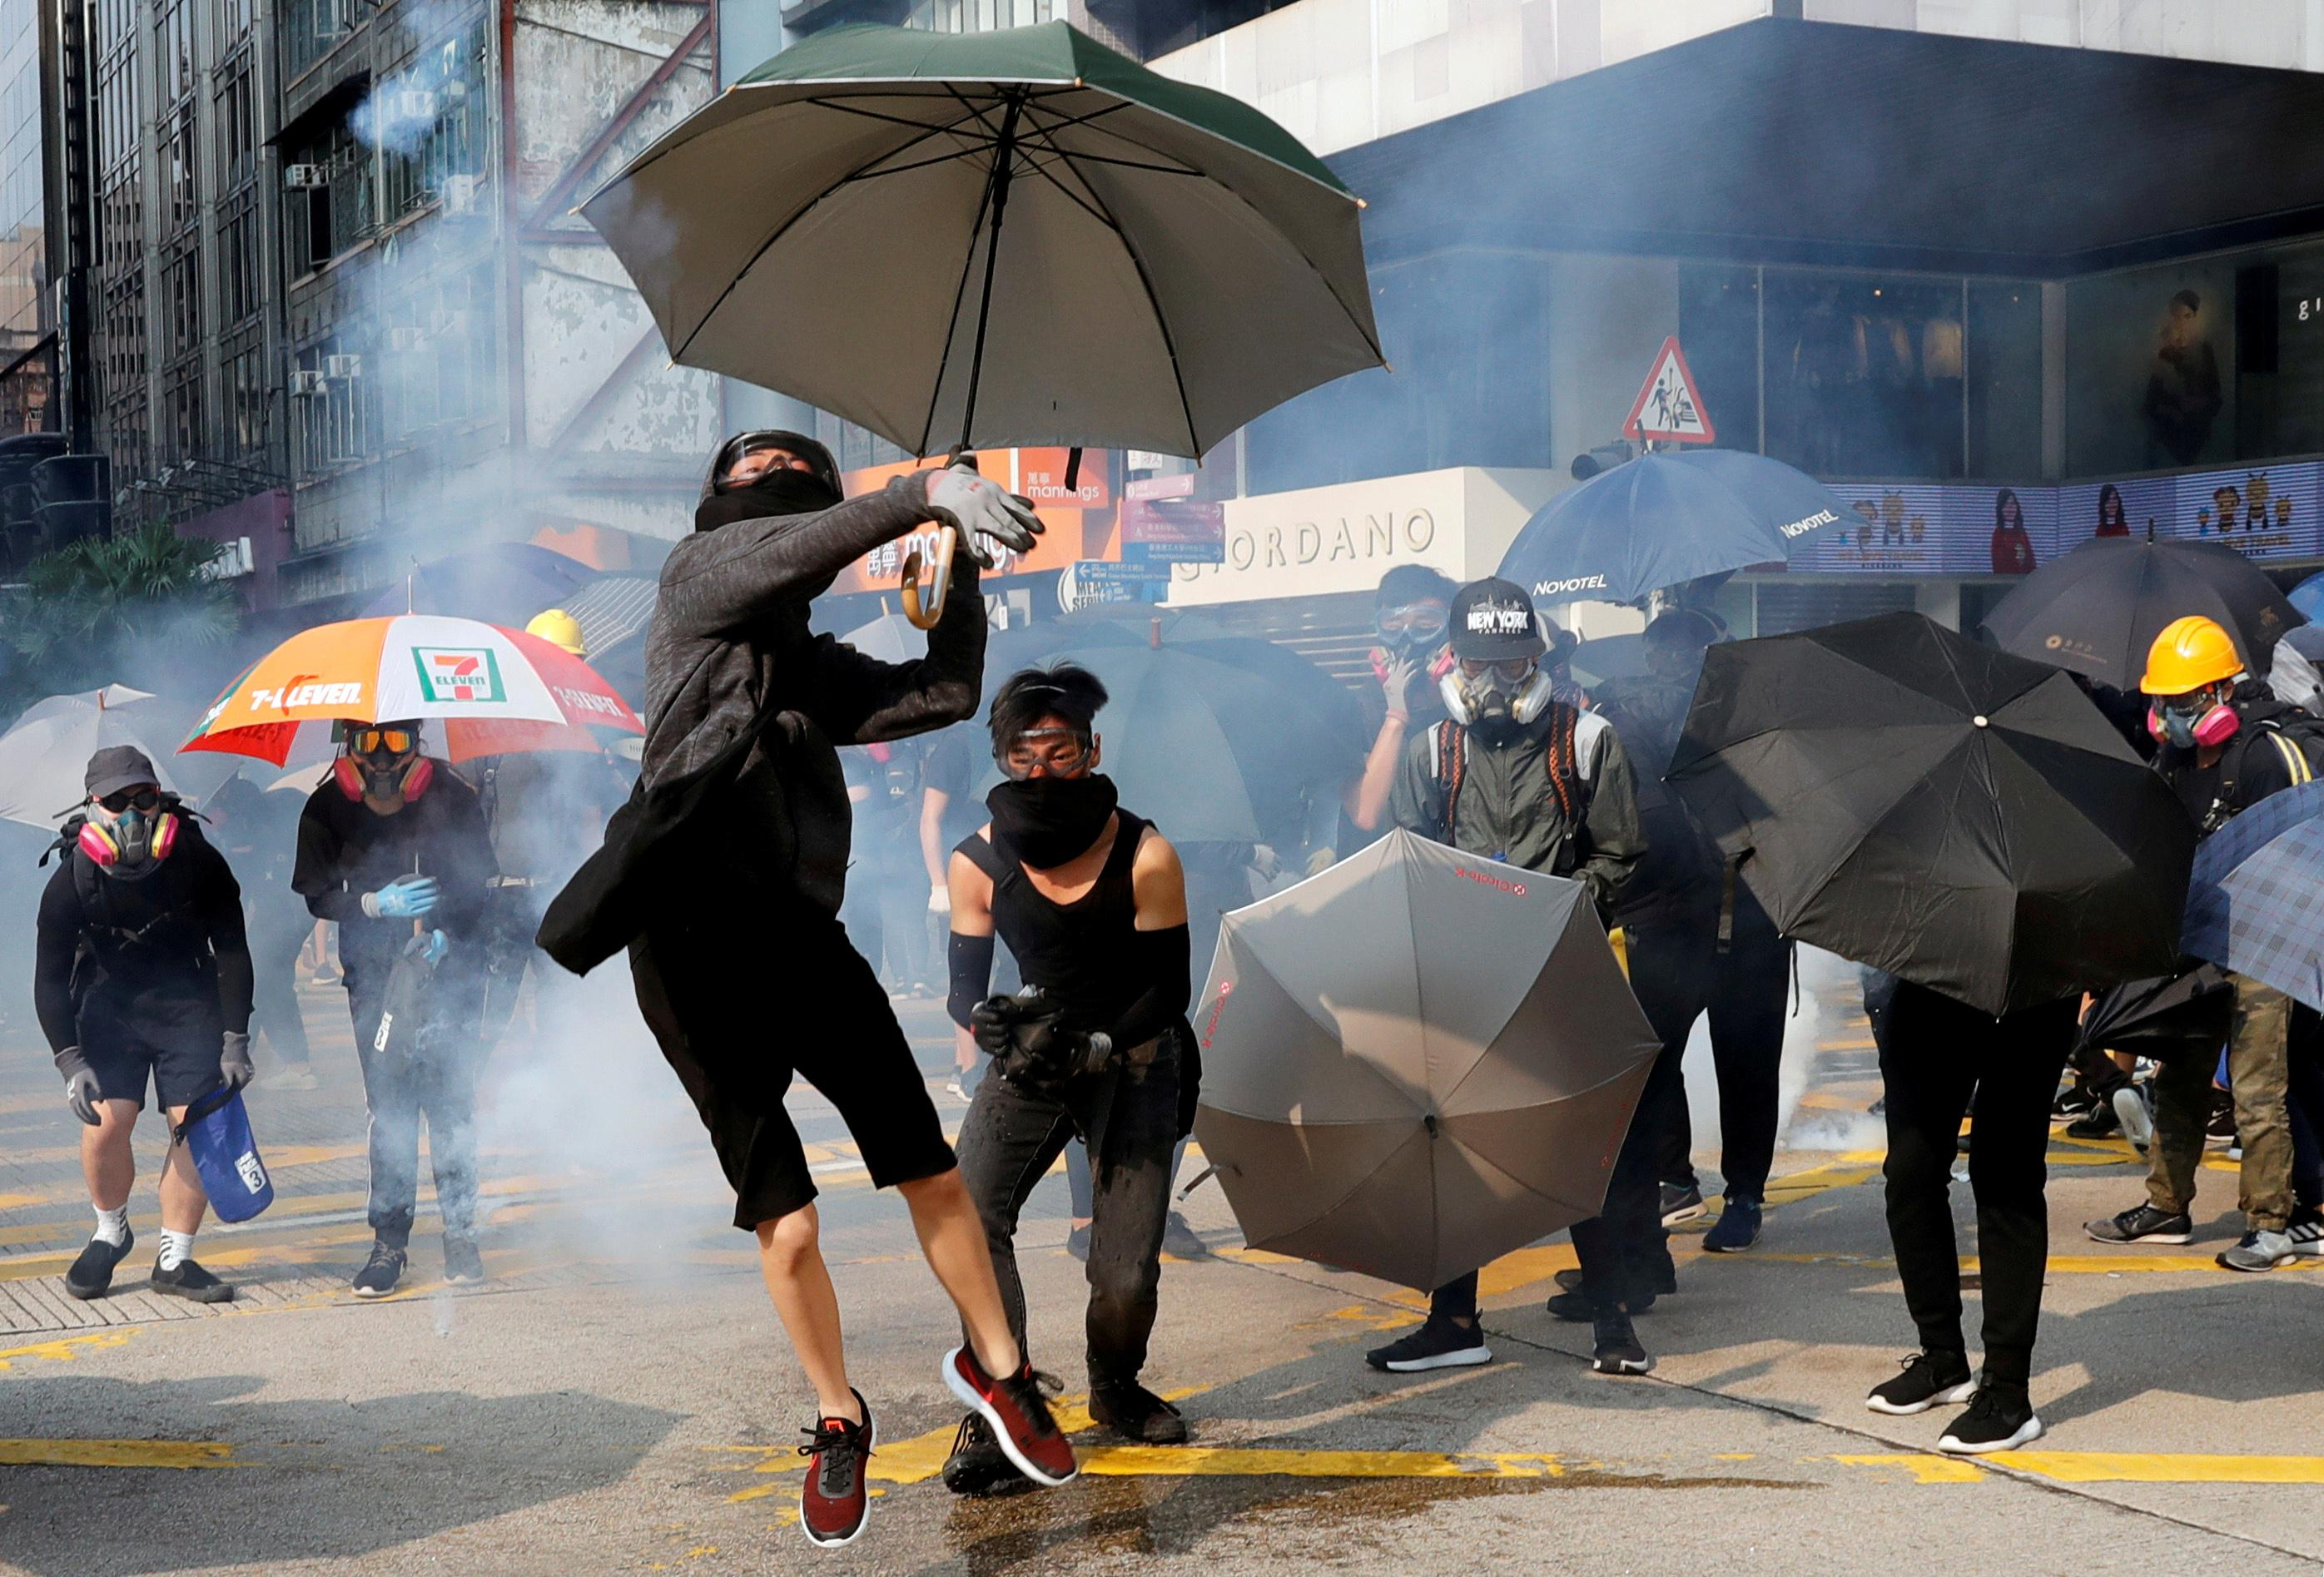 Hong Kong leader apologizes for mosque water cannon incident after...